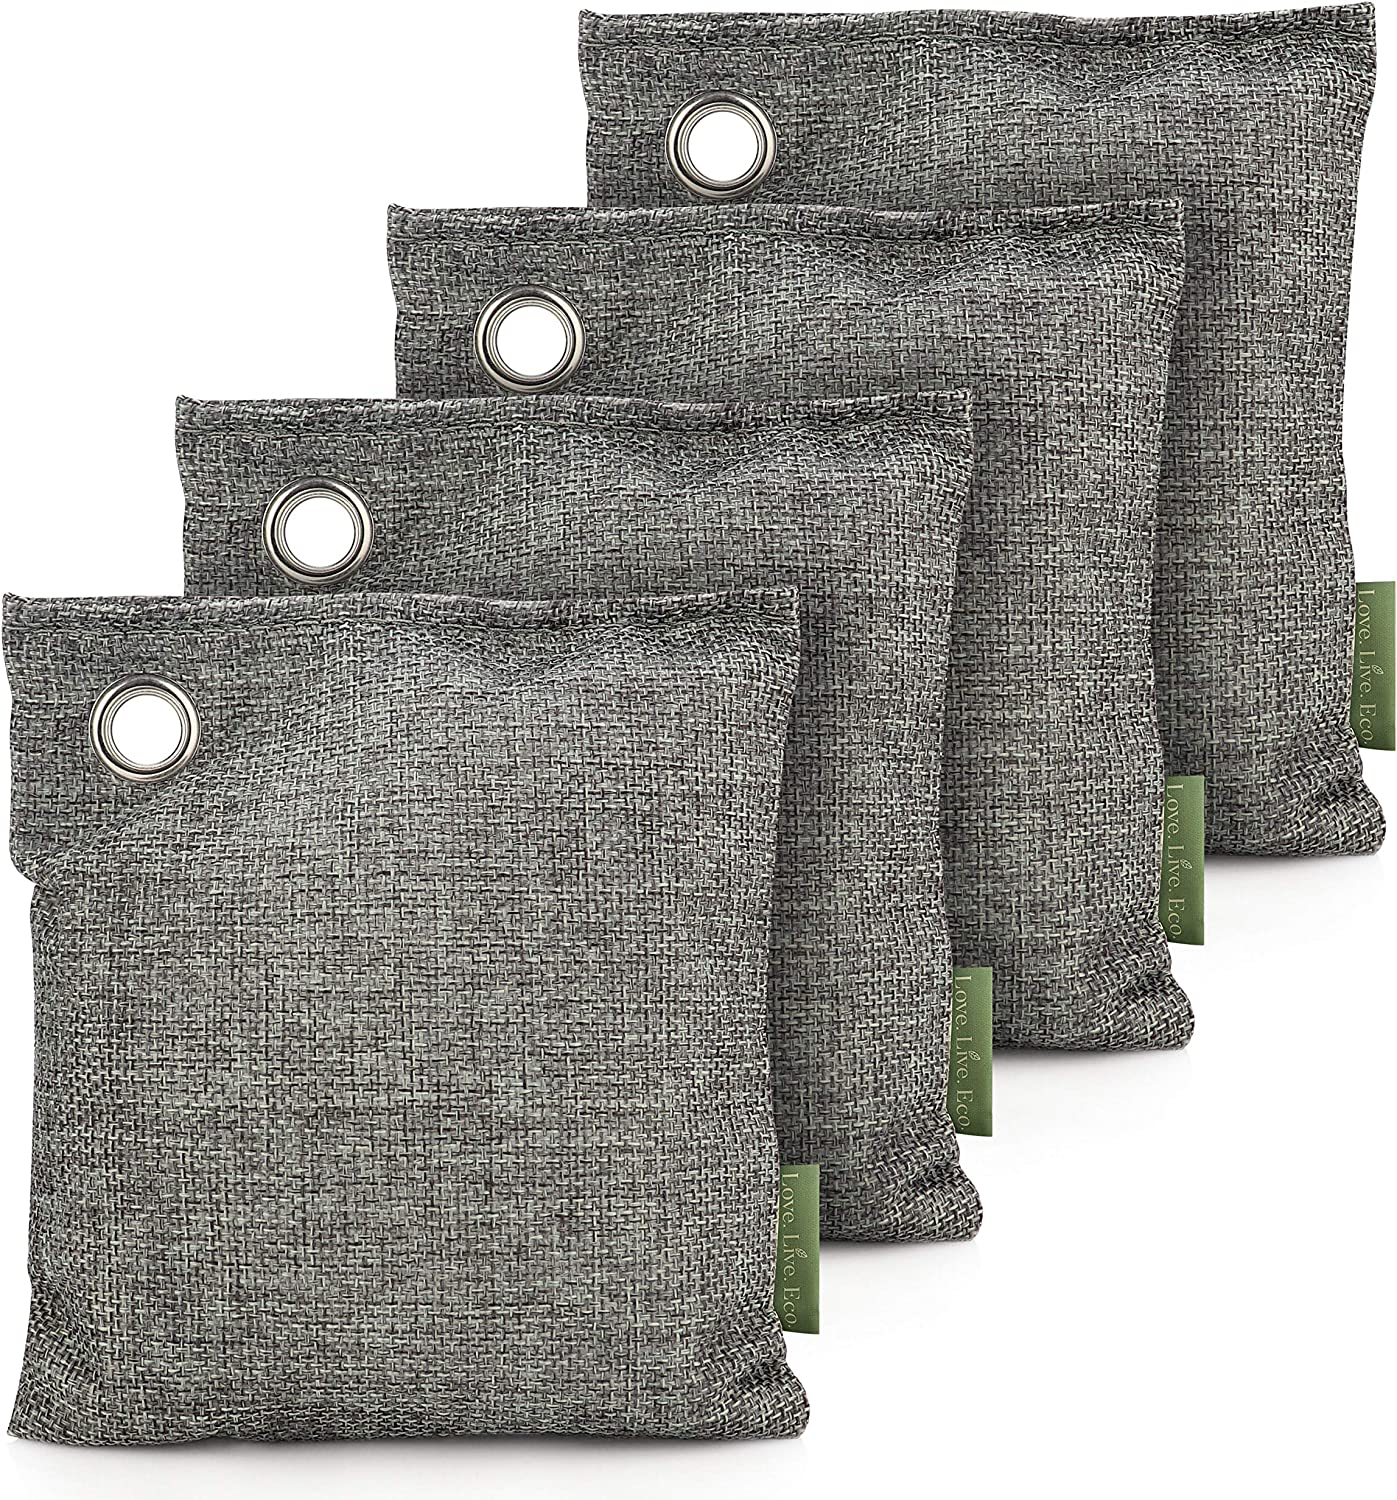 Bamboo Charcoal Air Purifying Bags 4 Pack 200g - Activated Charcoal Odor Eliminator and Moisture Absorber - Natural Air Fresheners for Home - Car Air Fresheners - Shoe Deodorizer - Pet Odor Eliminator